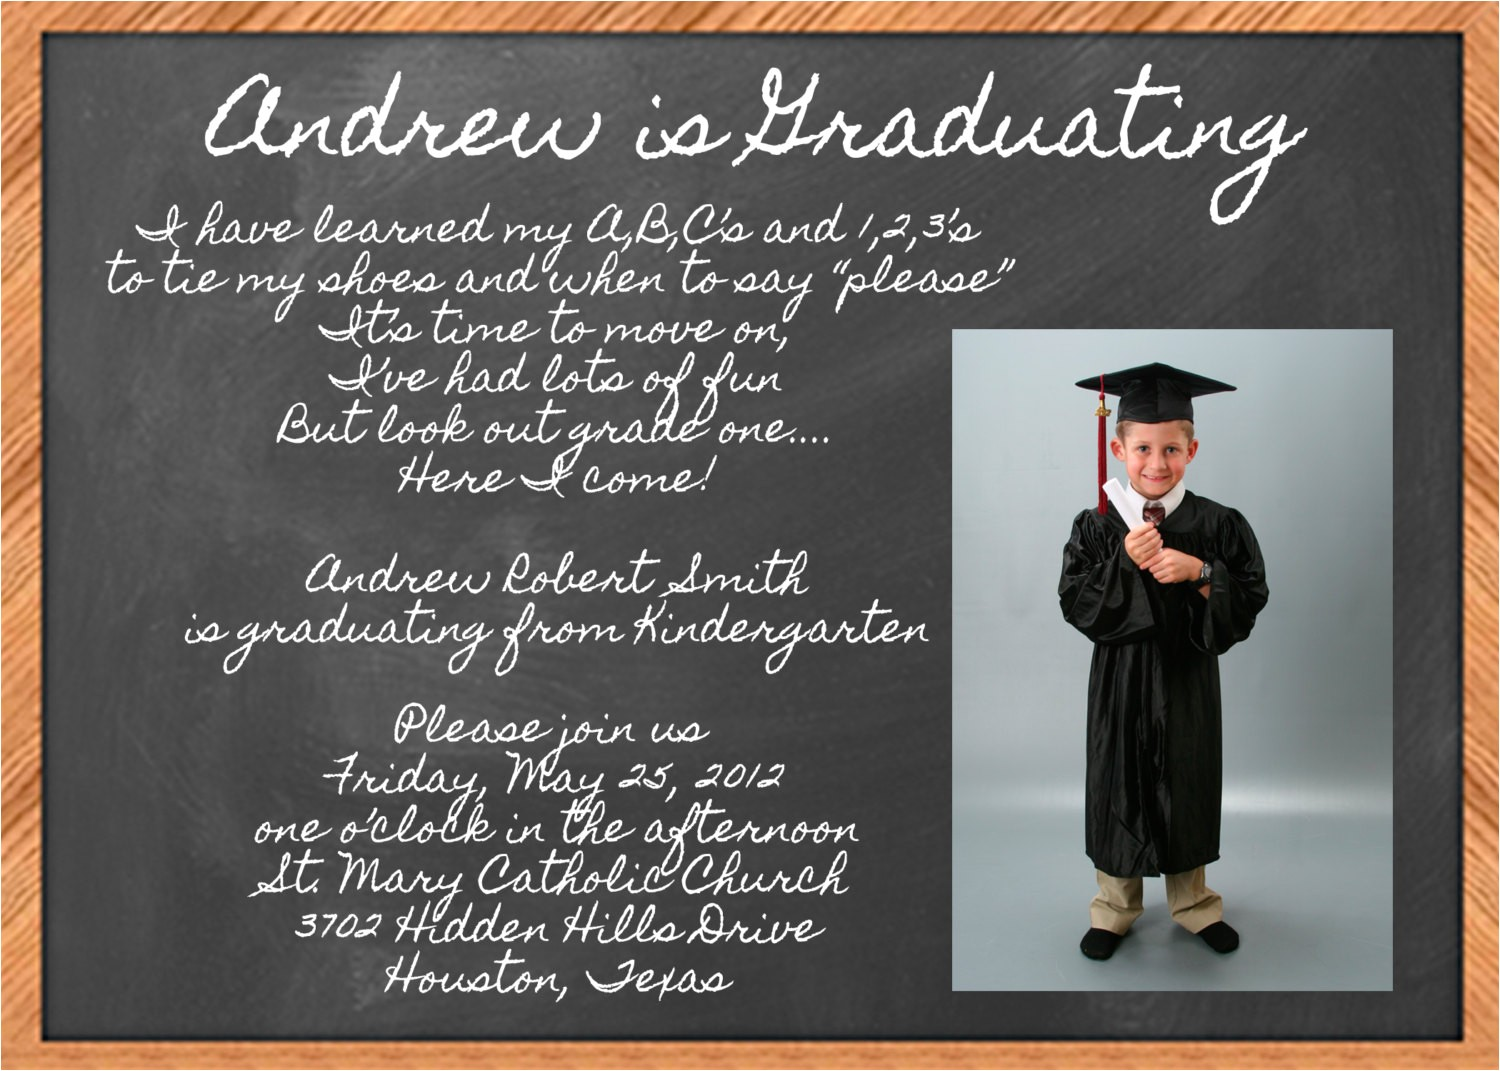 Graduation Invitation Maker Walmart Graduation Invitations Walmart Free Invitation Ideas